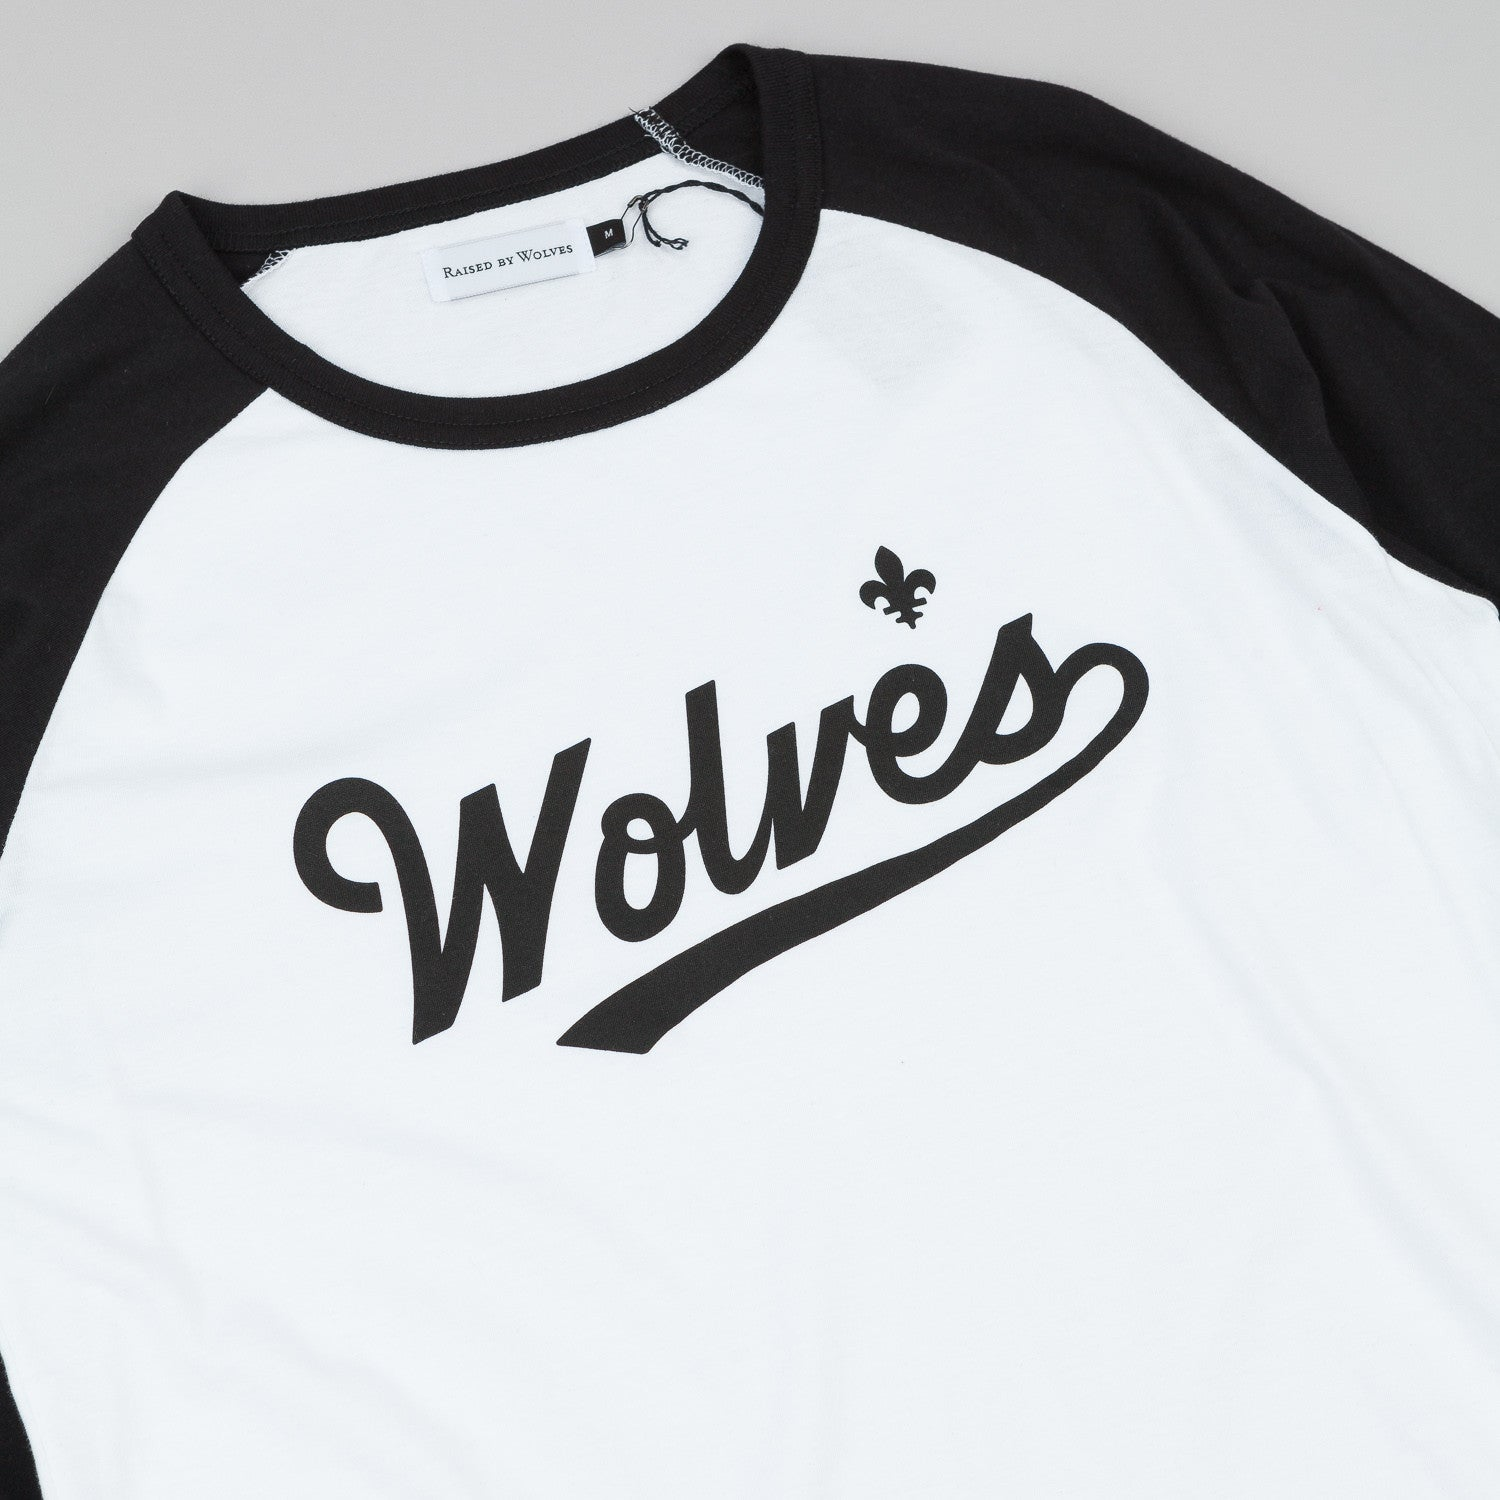 Raised By Wolves Raines Warm-Up 3/4 Sleeve Raglan T-Shirt - White / Black